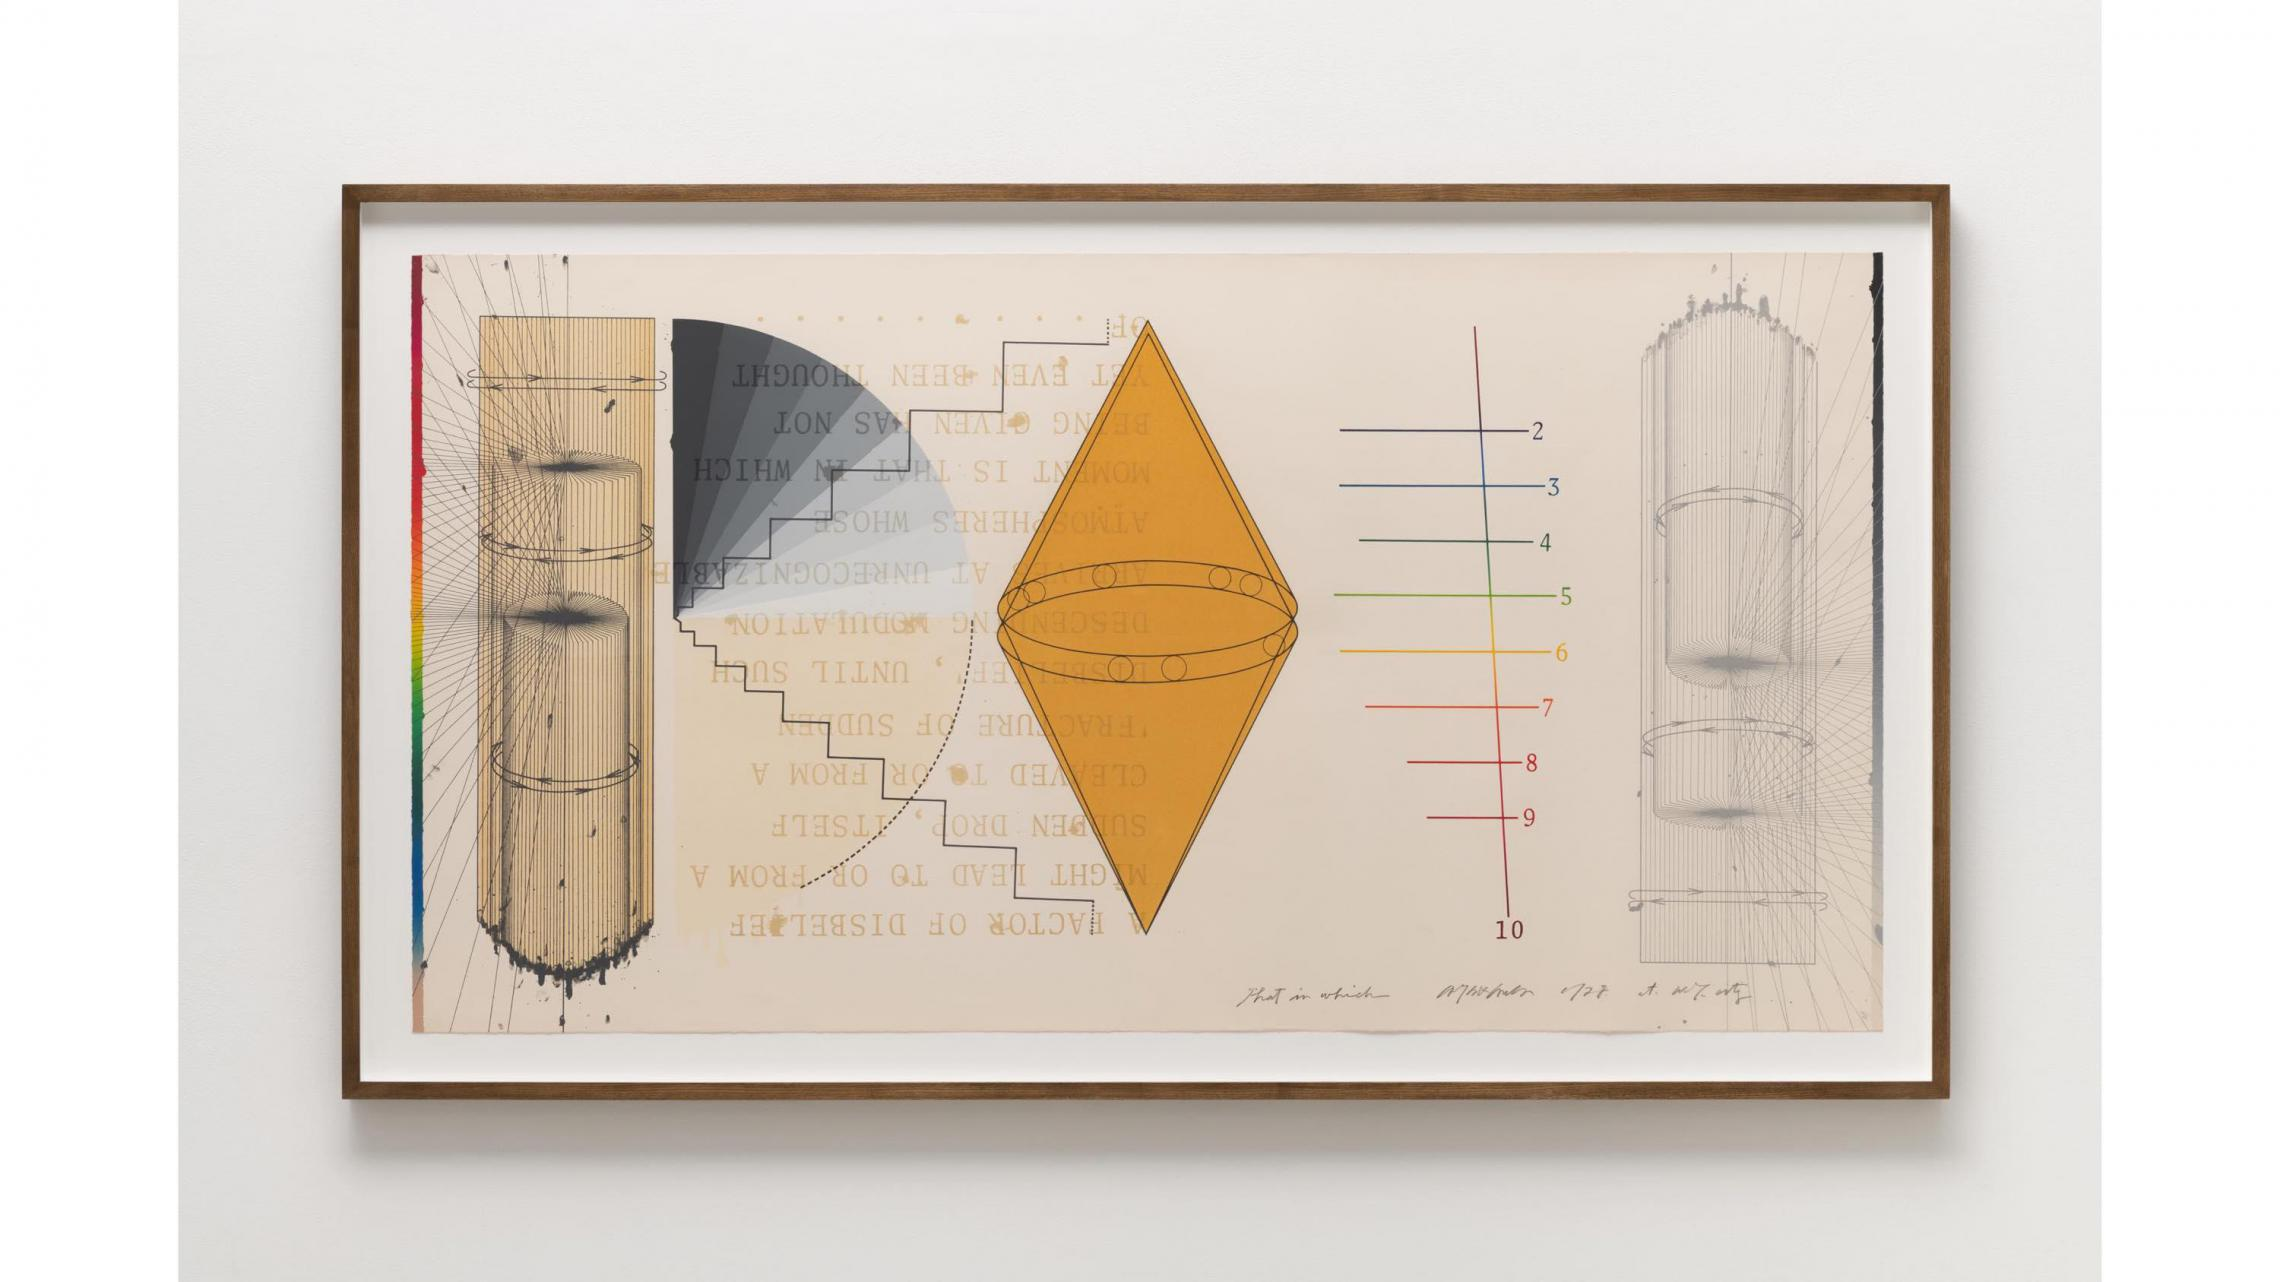 Shusaku Arakawa, THAT IN WHICH NO.3 , 1978, Color lithograph, silkscreen and collage on paper, 79 × 149.3 cm, Edition 25